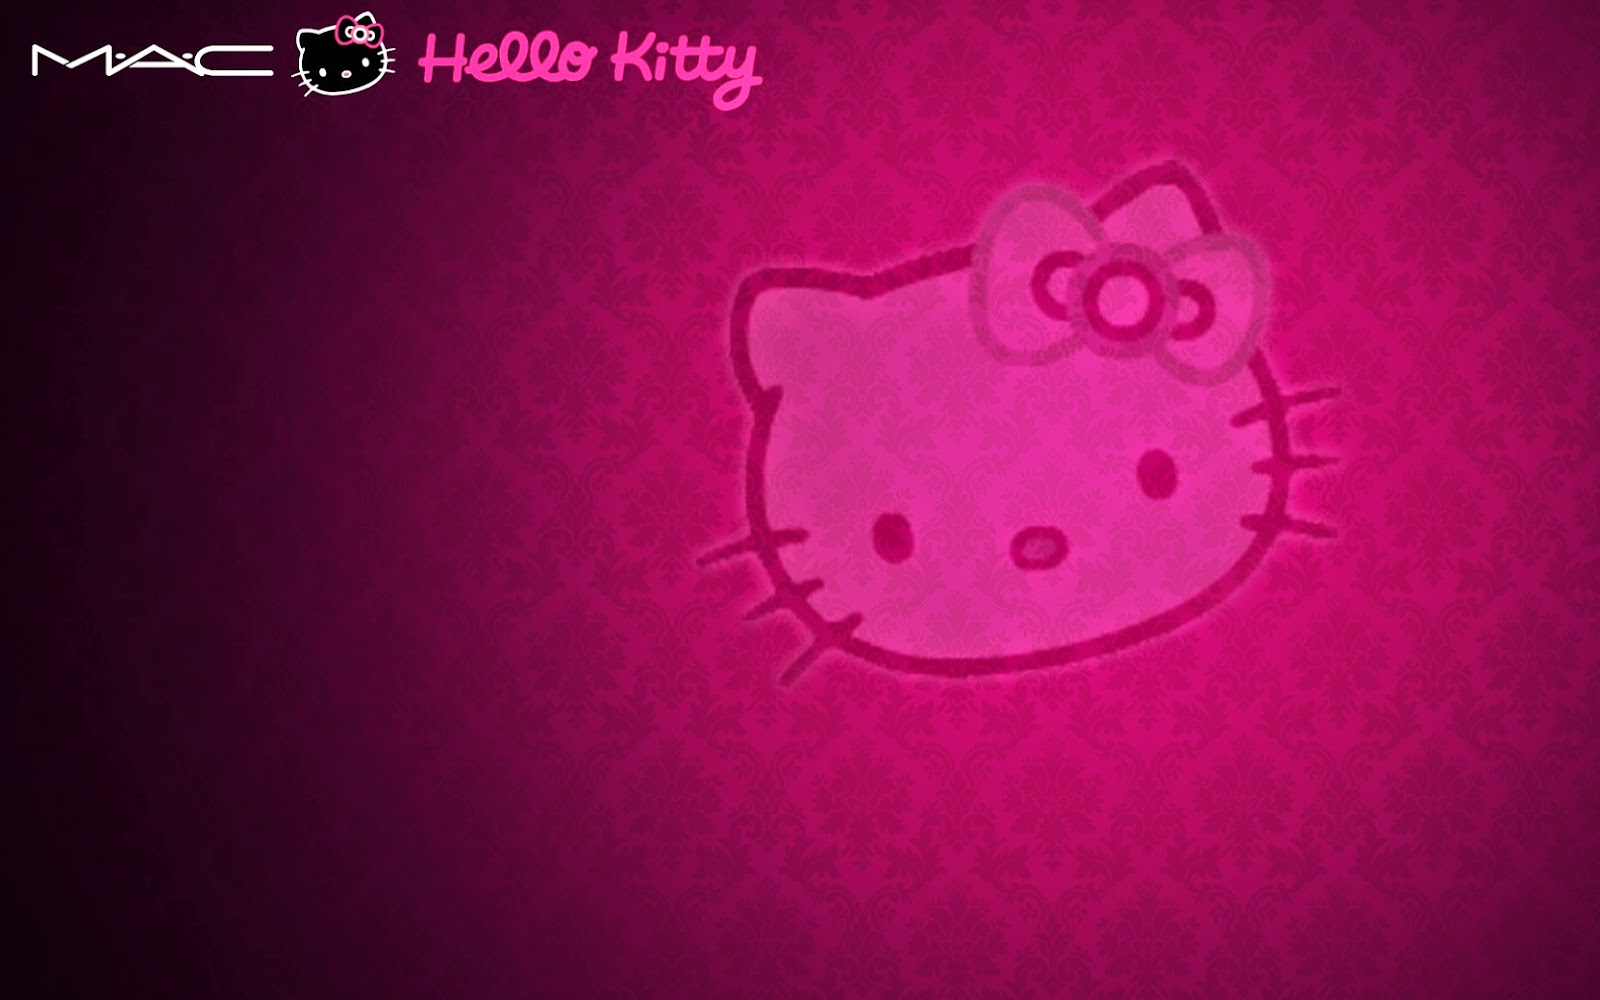 Amazing Wallpaper Hello Kitty Mac - 14697-Mac%2BHello%2BKitty%2BHD%2BWallpaperz  You Should Have_968312.jpg